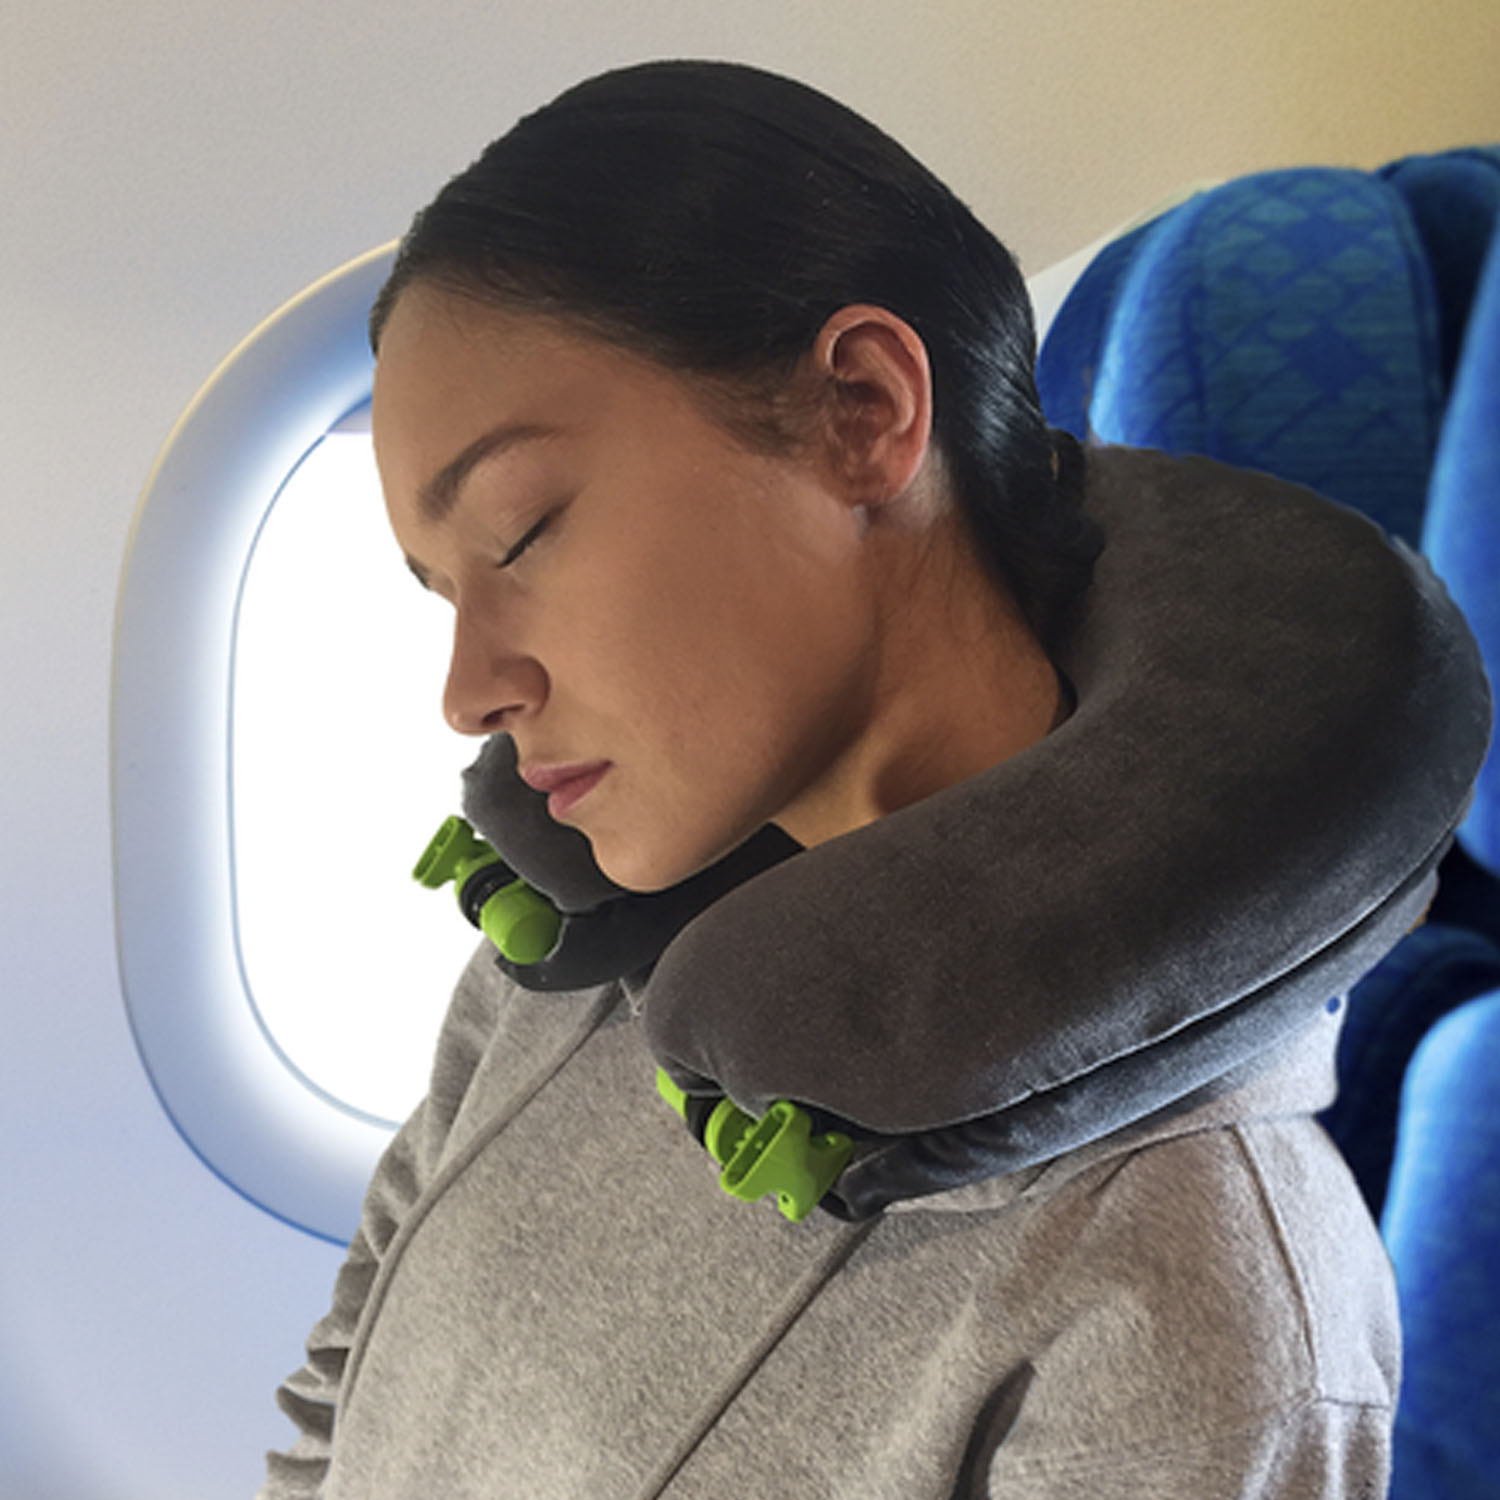 Dozing Just like a normal neck pillow